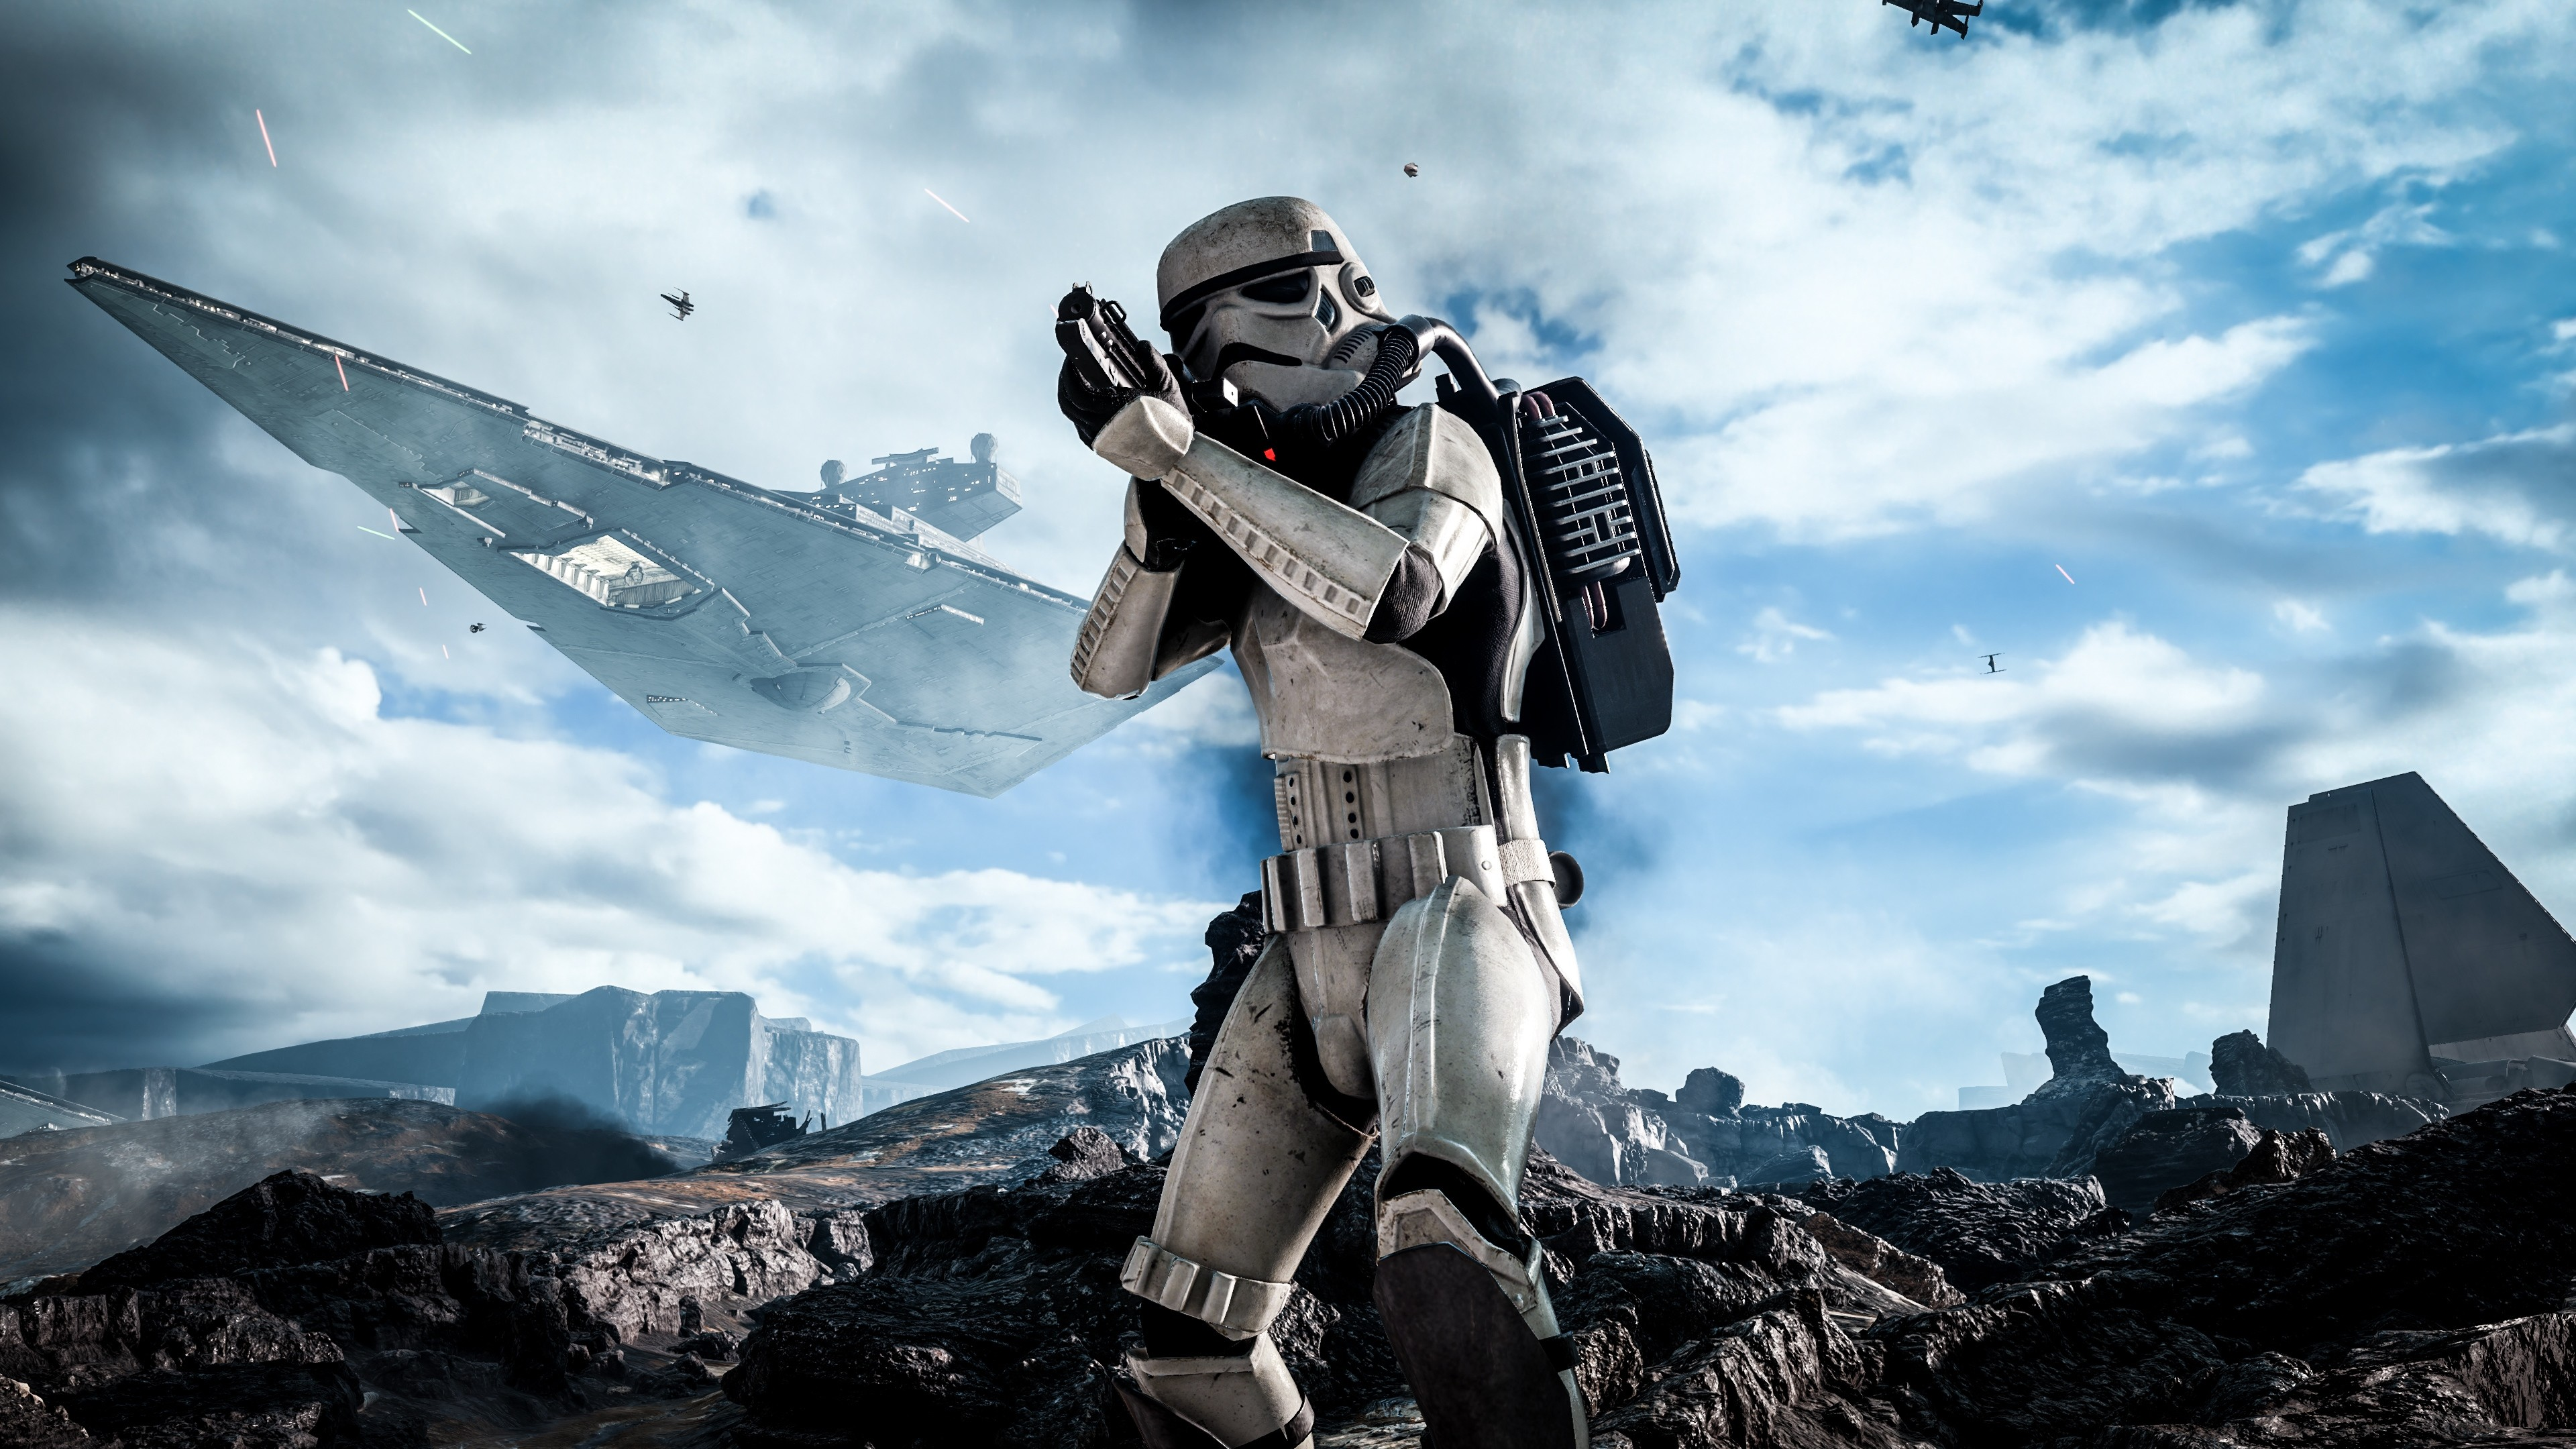 3840x2160  Wallpaper star wars, battlefront, electronic arts